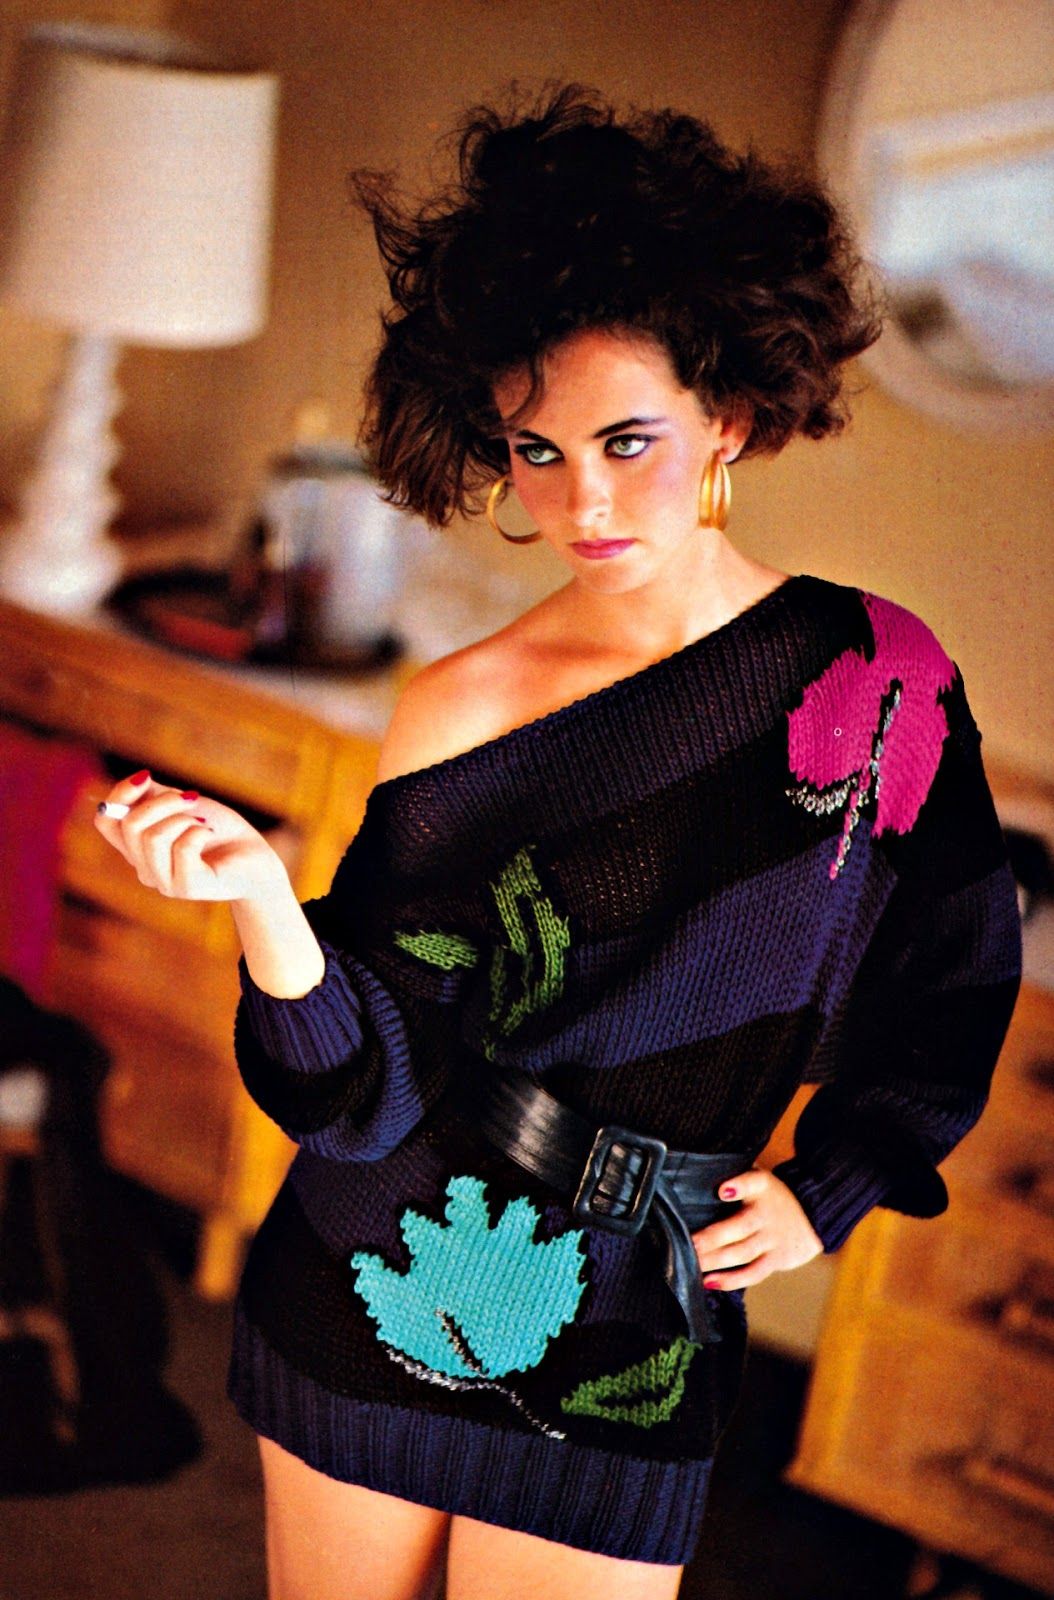 more was more in '80s fashion  vintage news daily